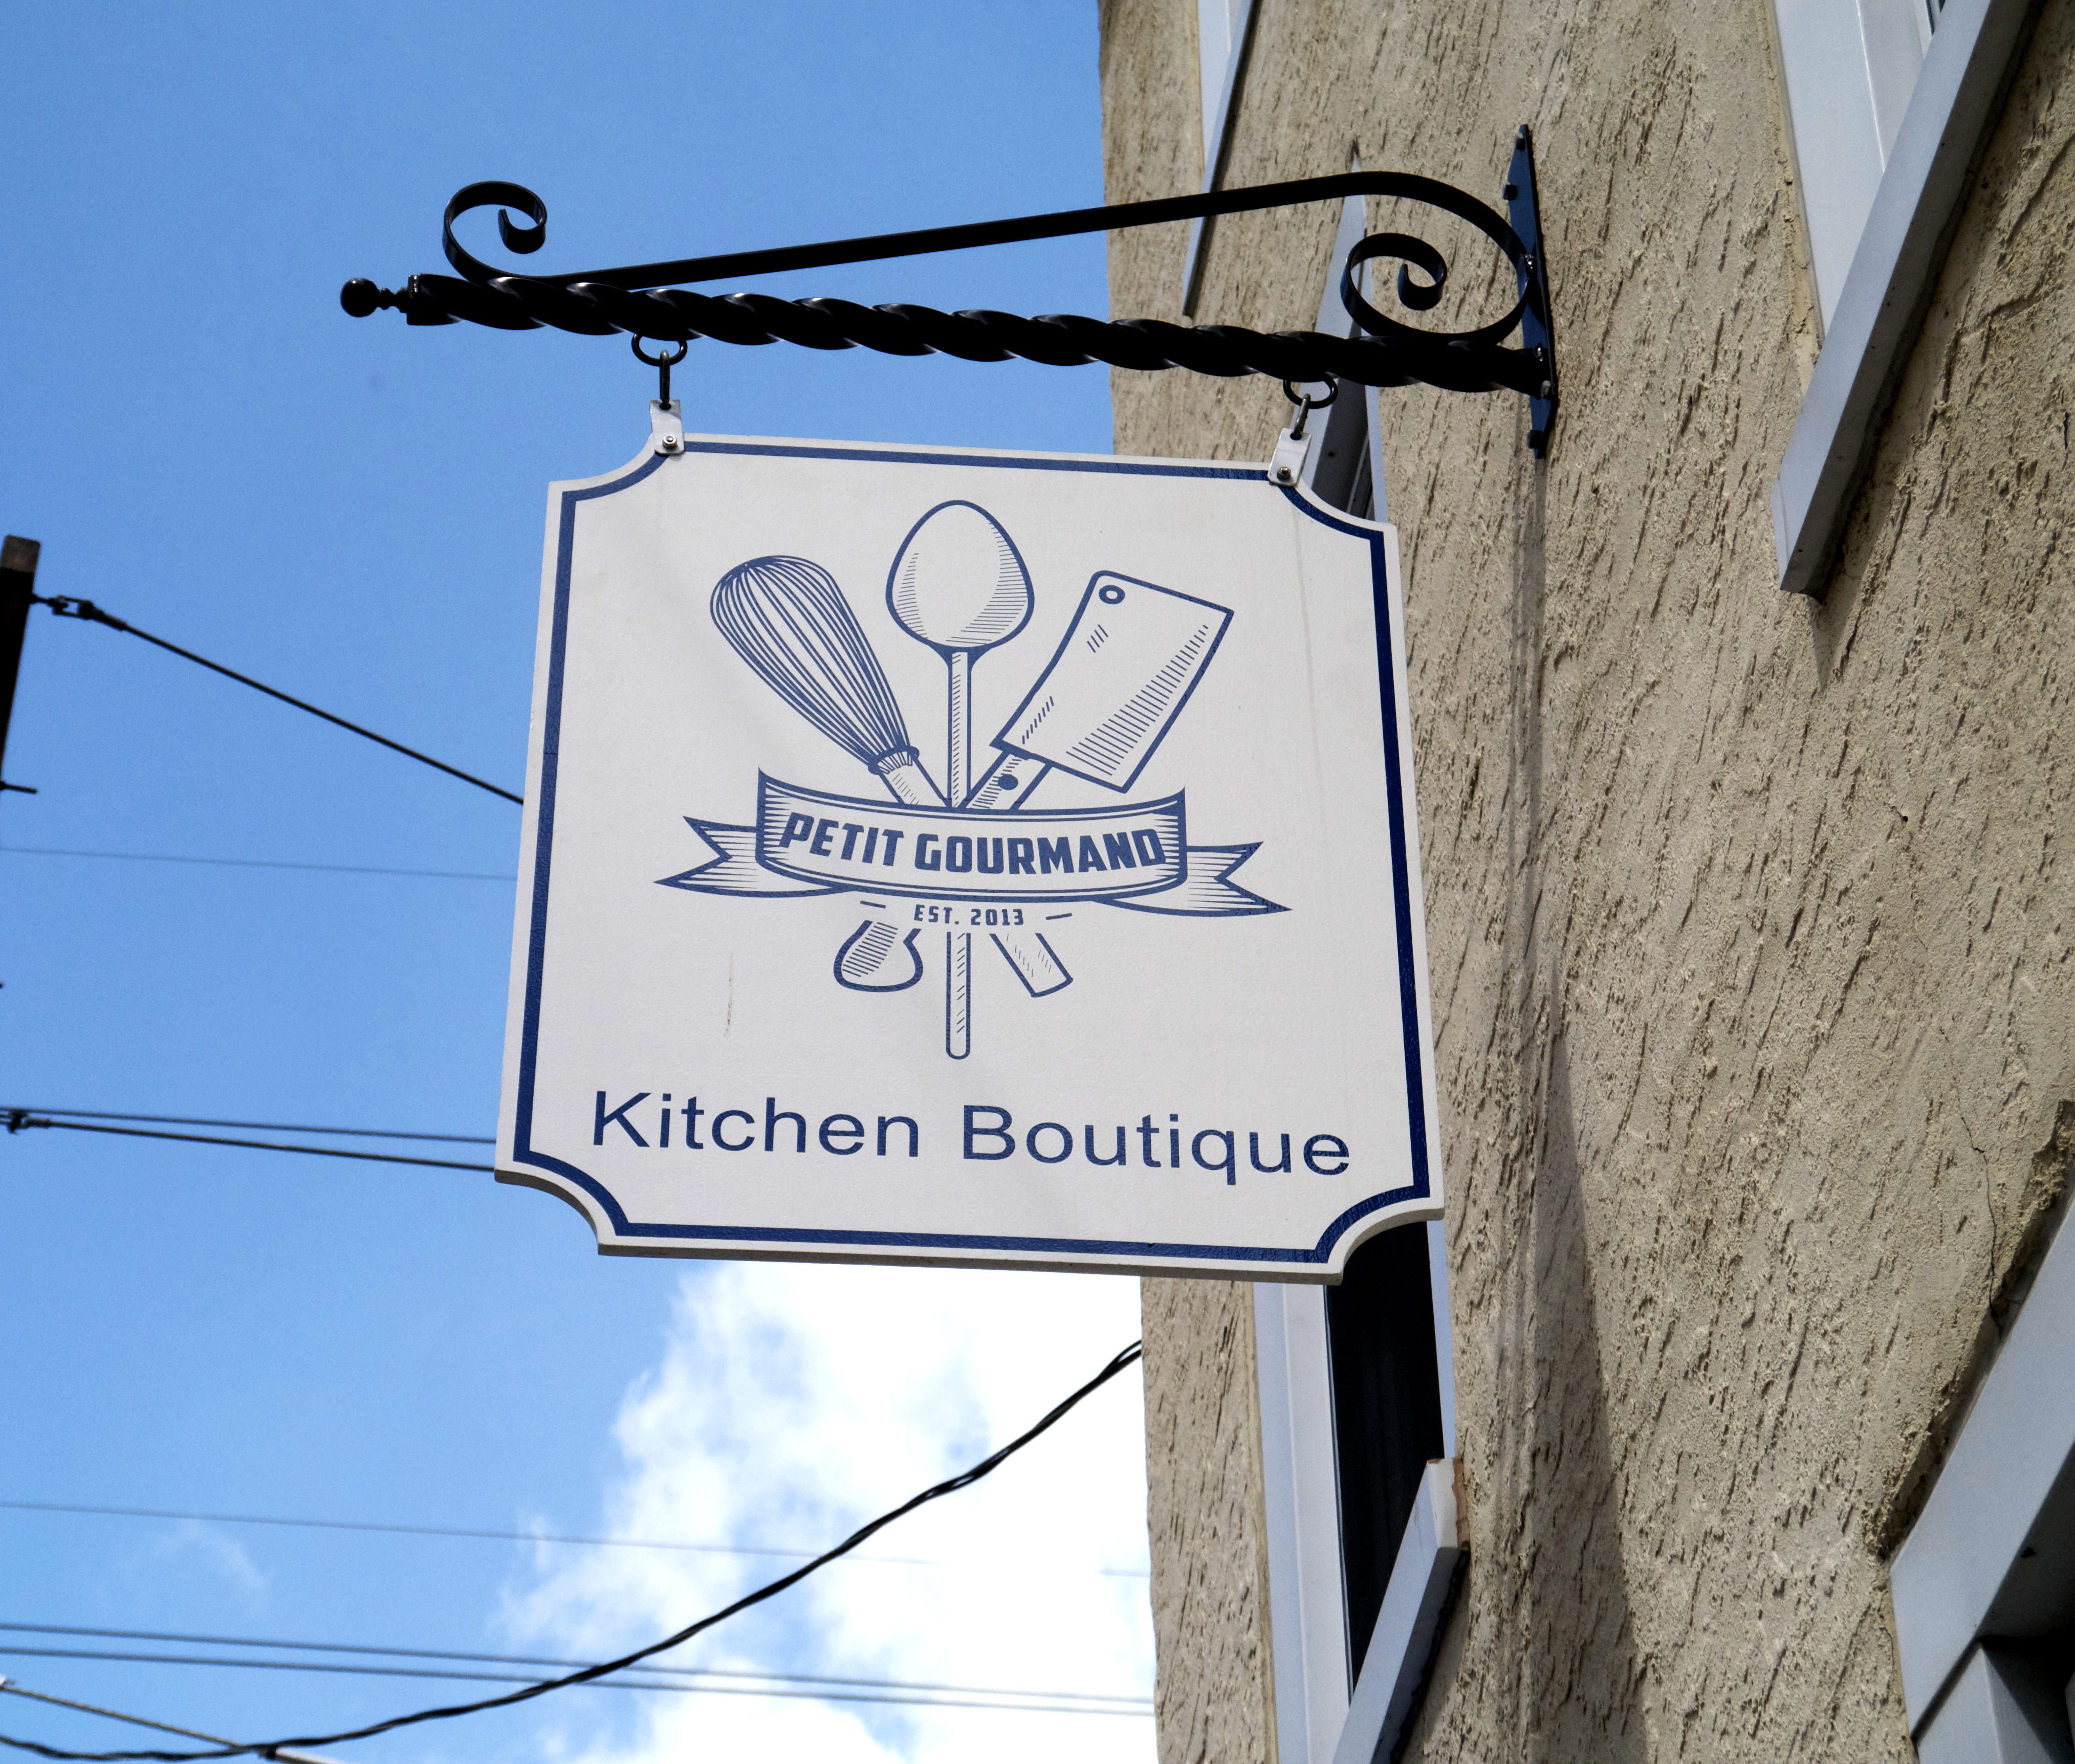 Petit Gourmand opened in September 2013